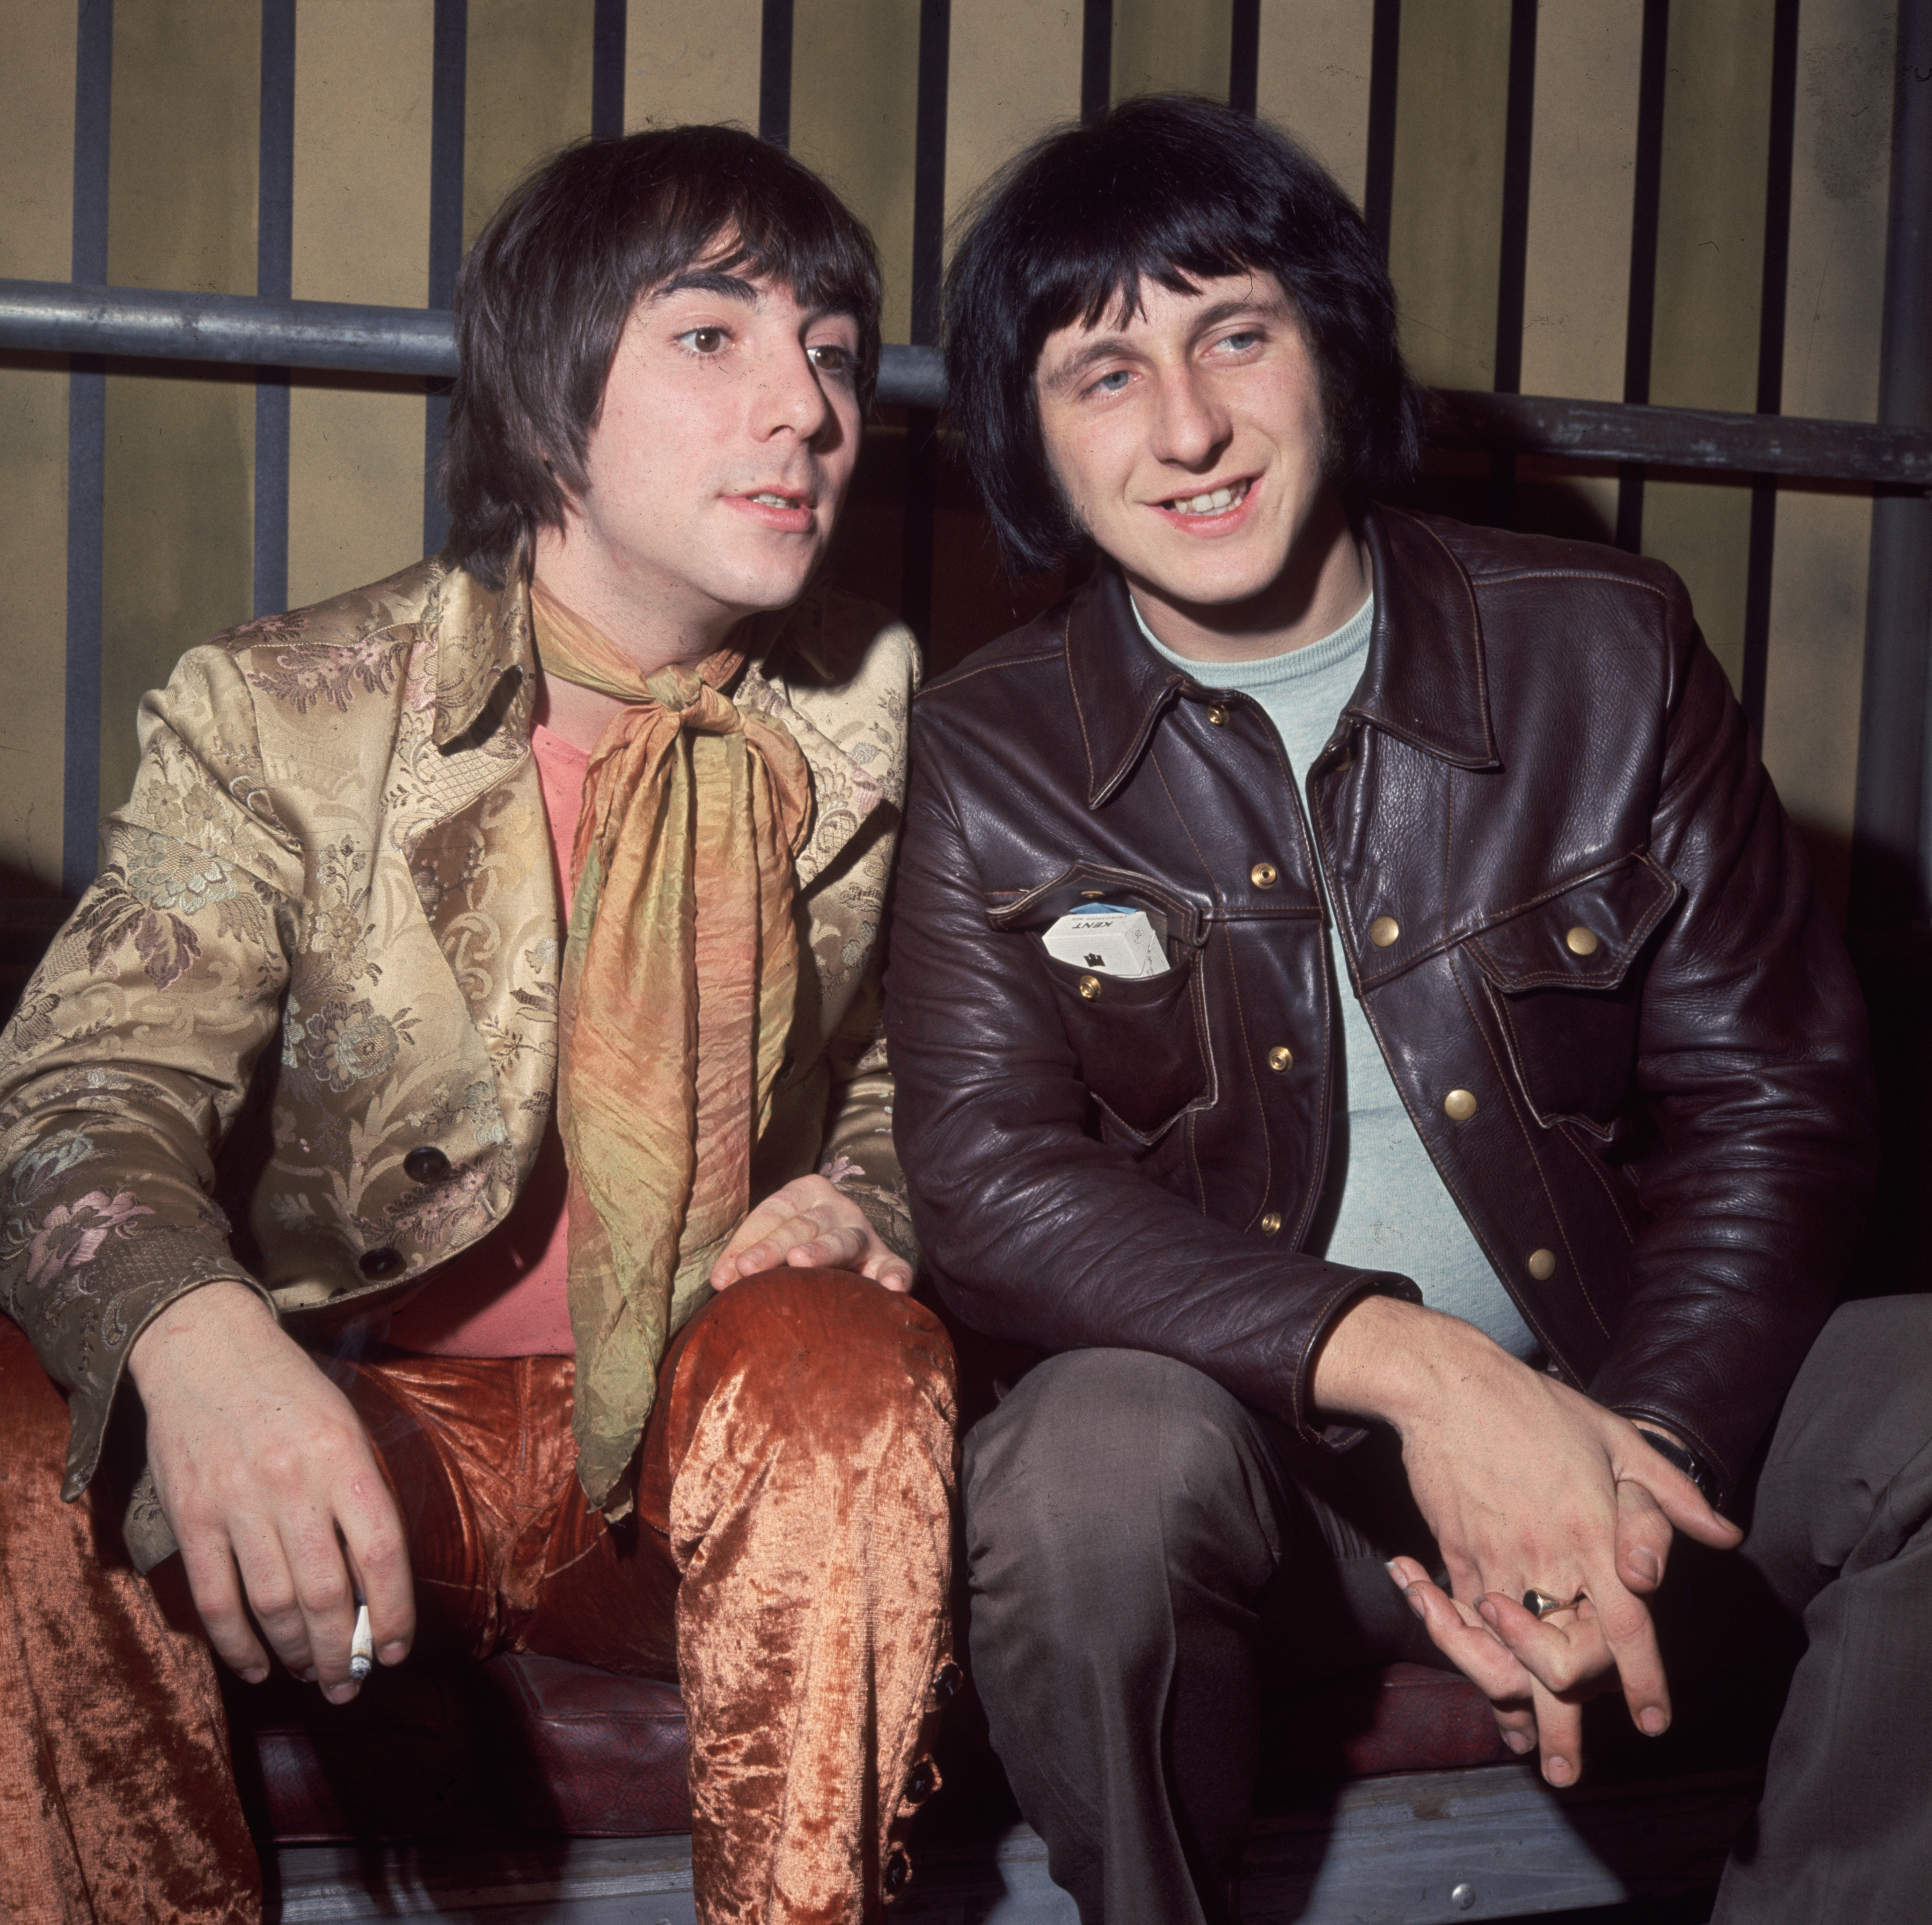 10th December 1968:  Keith Moon (1947-1978), the drummer of the British mod band 'The Who' with his bandmate, bass guitarist John Entwistle (1944 - 2002), Internel Studios in Stonebridge Park, Wembley, during the making of the unreleased Rolling Stones film 'Rock 'n' Roll Circus'.  (Photo by Hulton Archive/Getty Images)